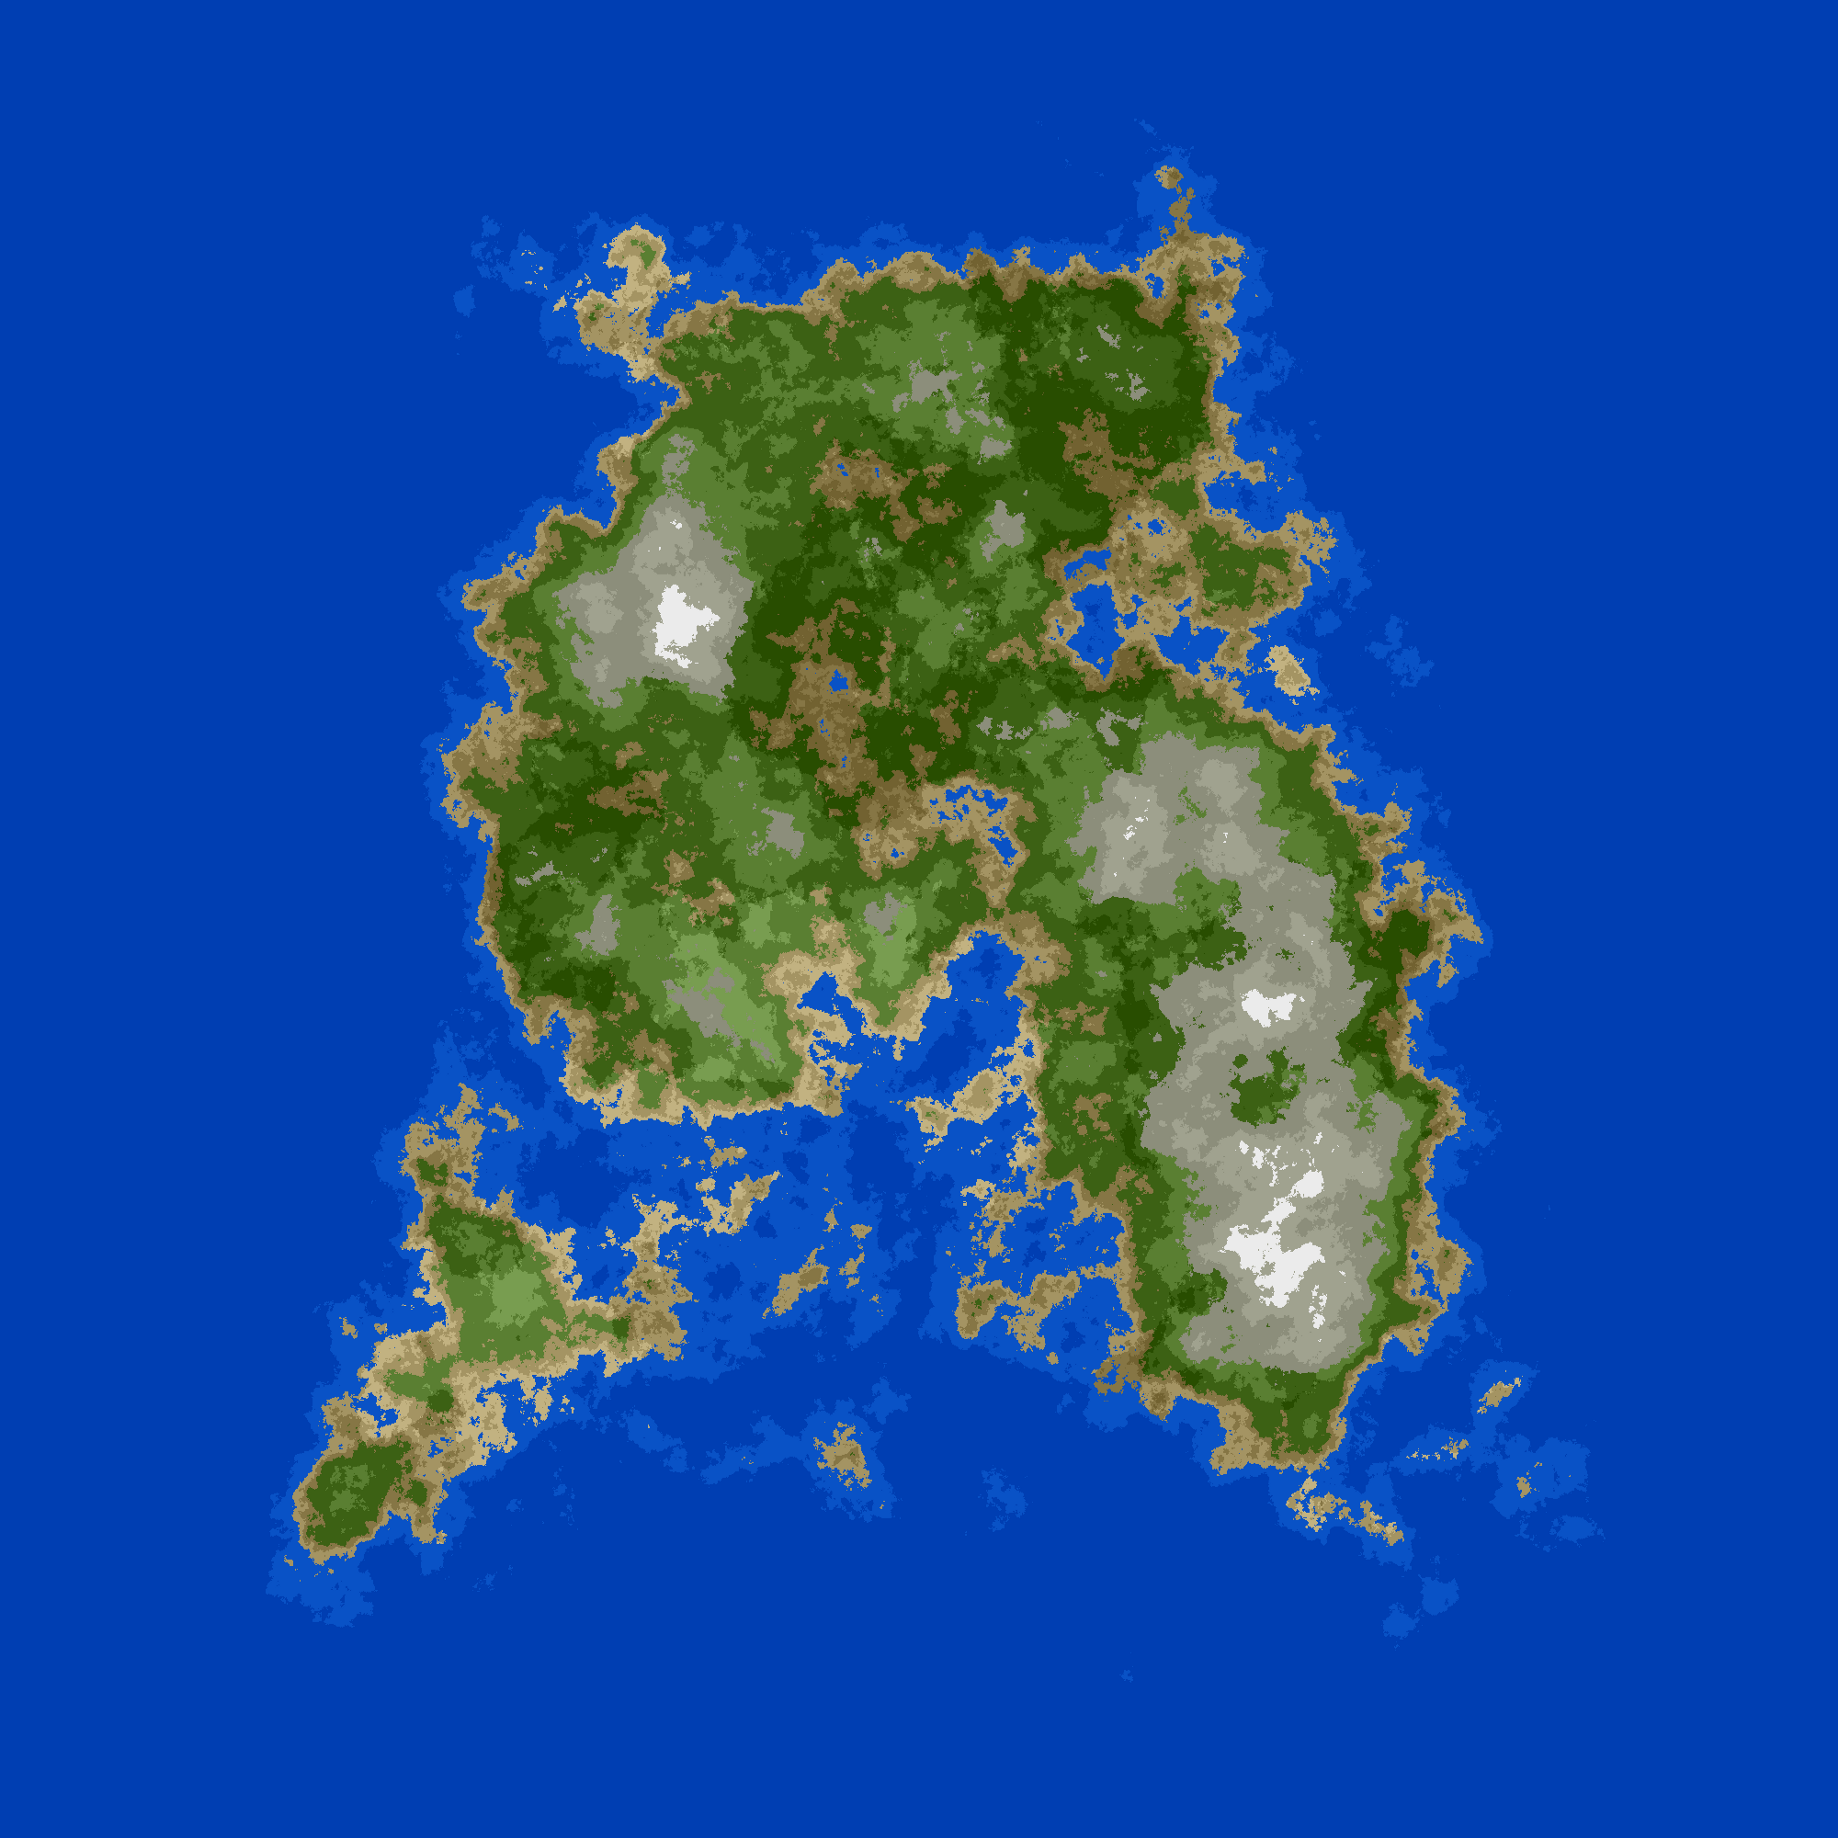 Procedural 2D Island Generation — Noise Functions - Travall - Medium